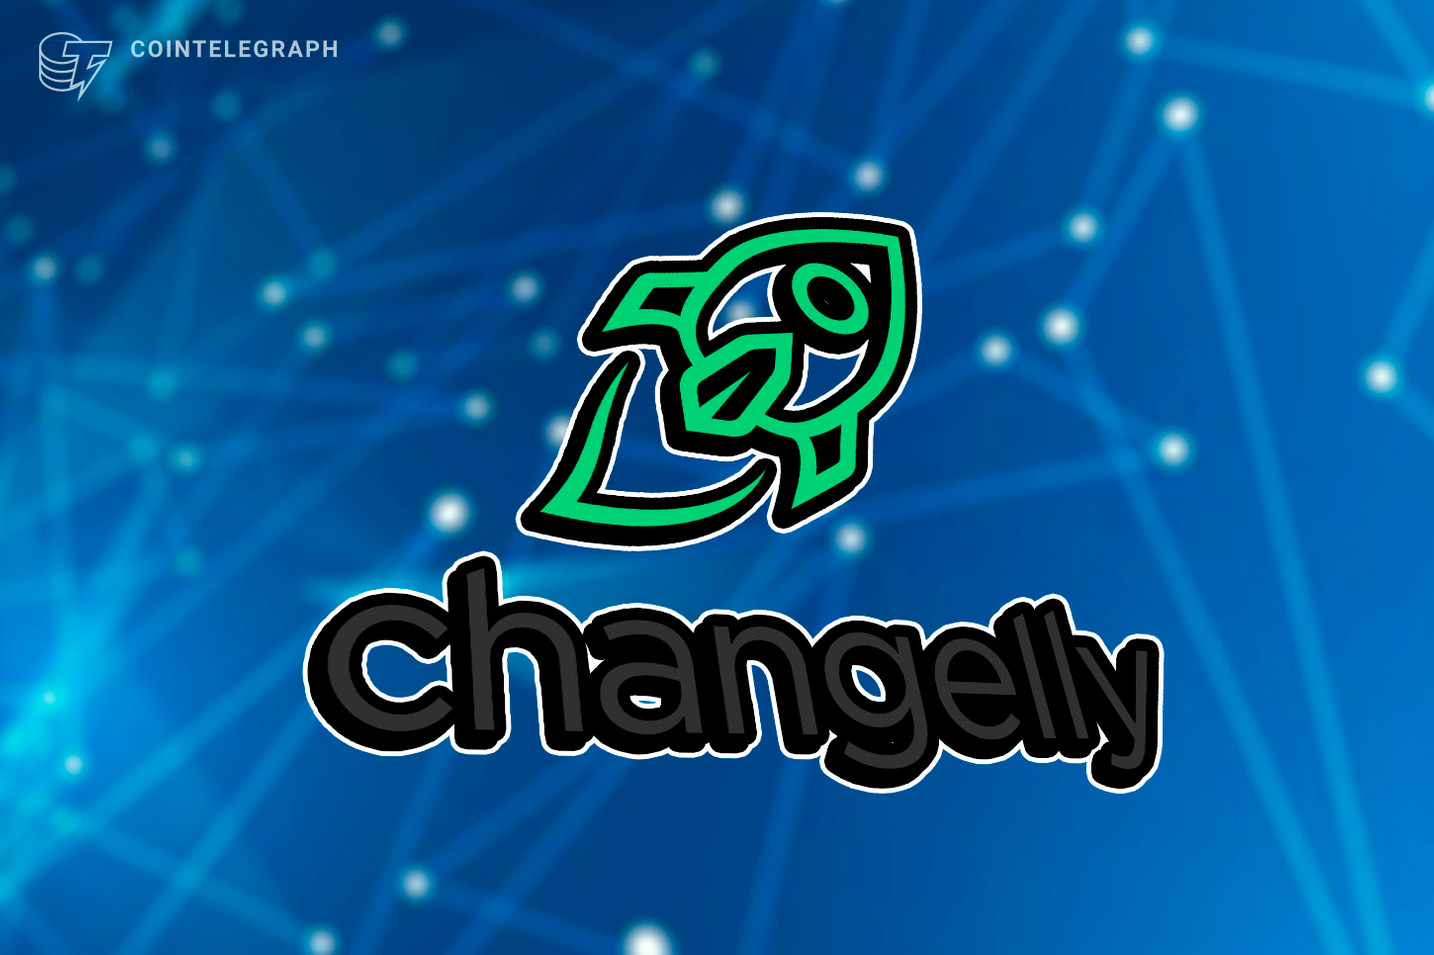 Changelly announces winner of crypto essay competition